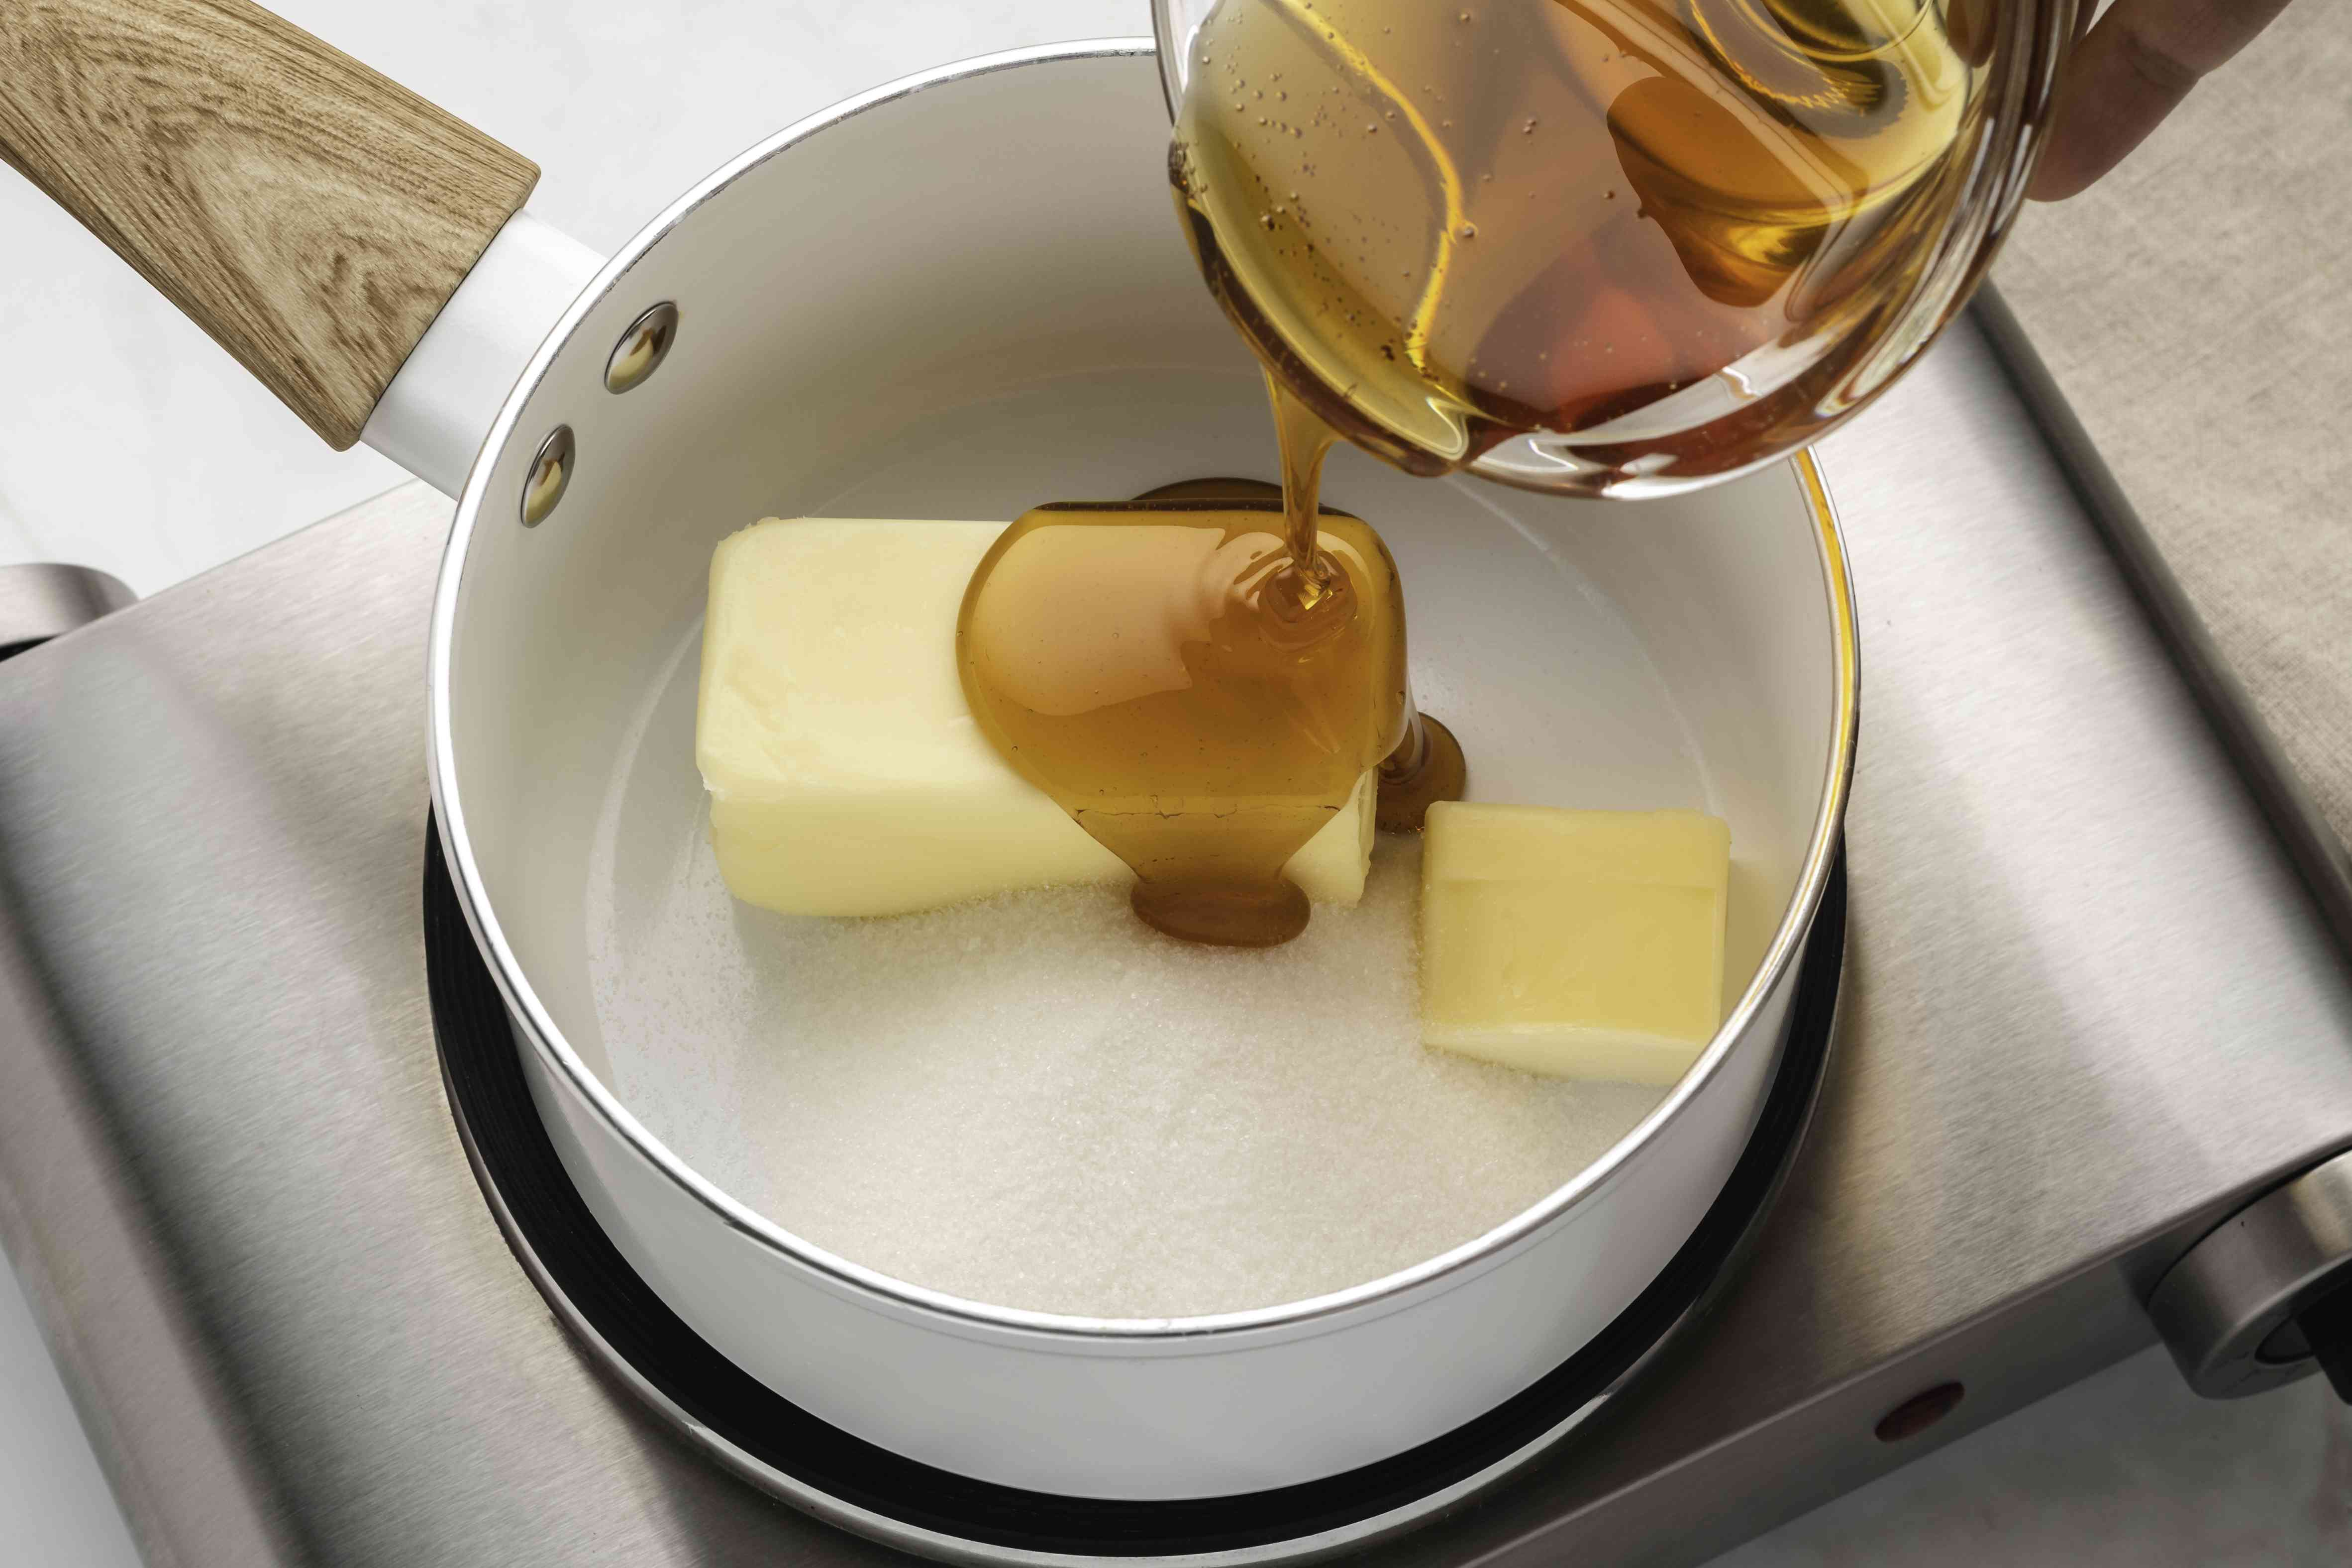 Sugar, honey and butter in a saucepan